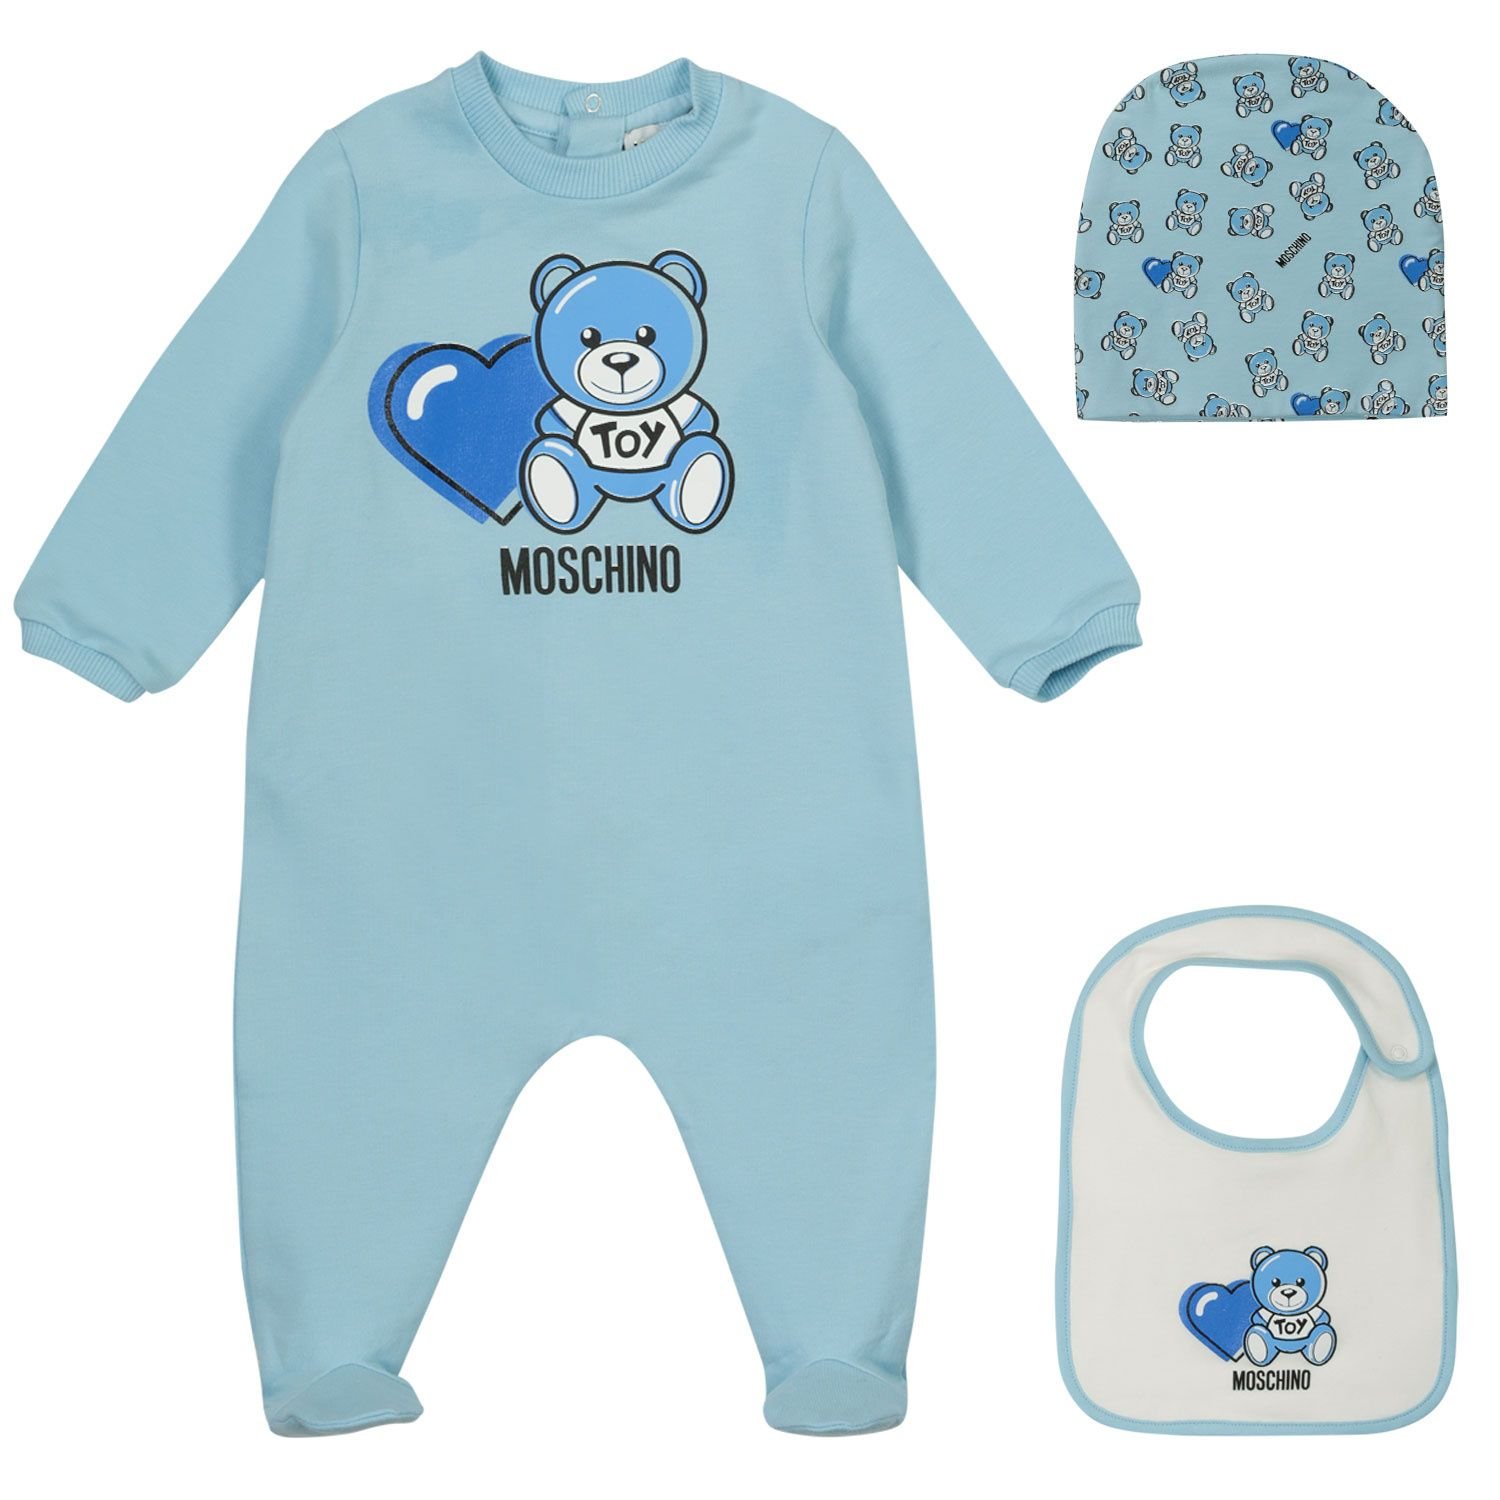 Picture of Moschino MUY03C baby playsuit light blue